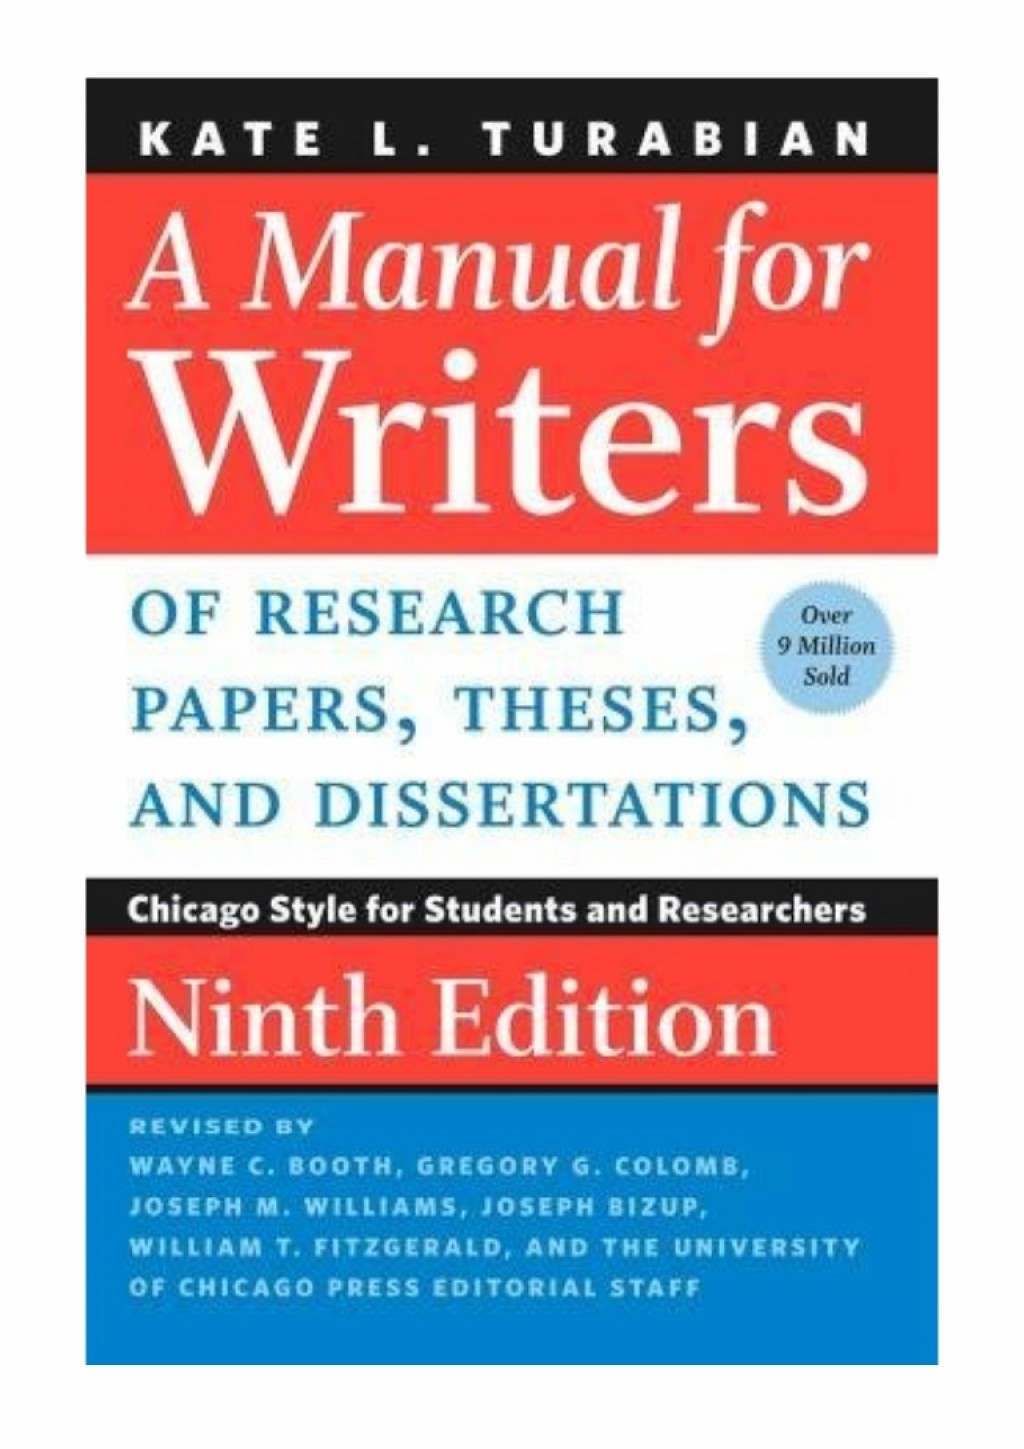 010 Manual For Writers Of Research Papers Theses And Dissertations Paper 022643057x Amanualforwritersofresearchpapersthesesanddissertationsnintheditionbykatel Thumbnail Magnificent A 8th Ed Pdf Large